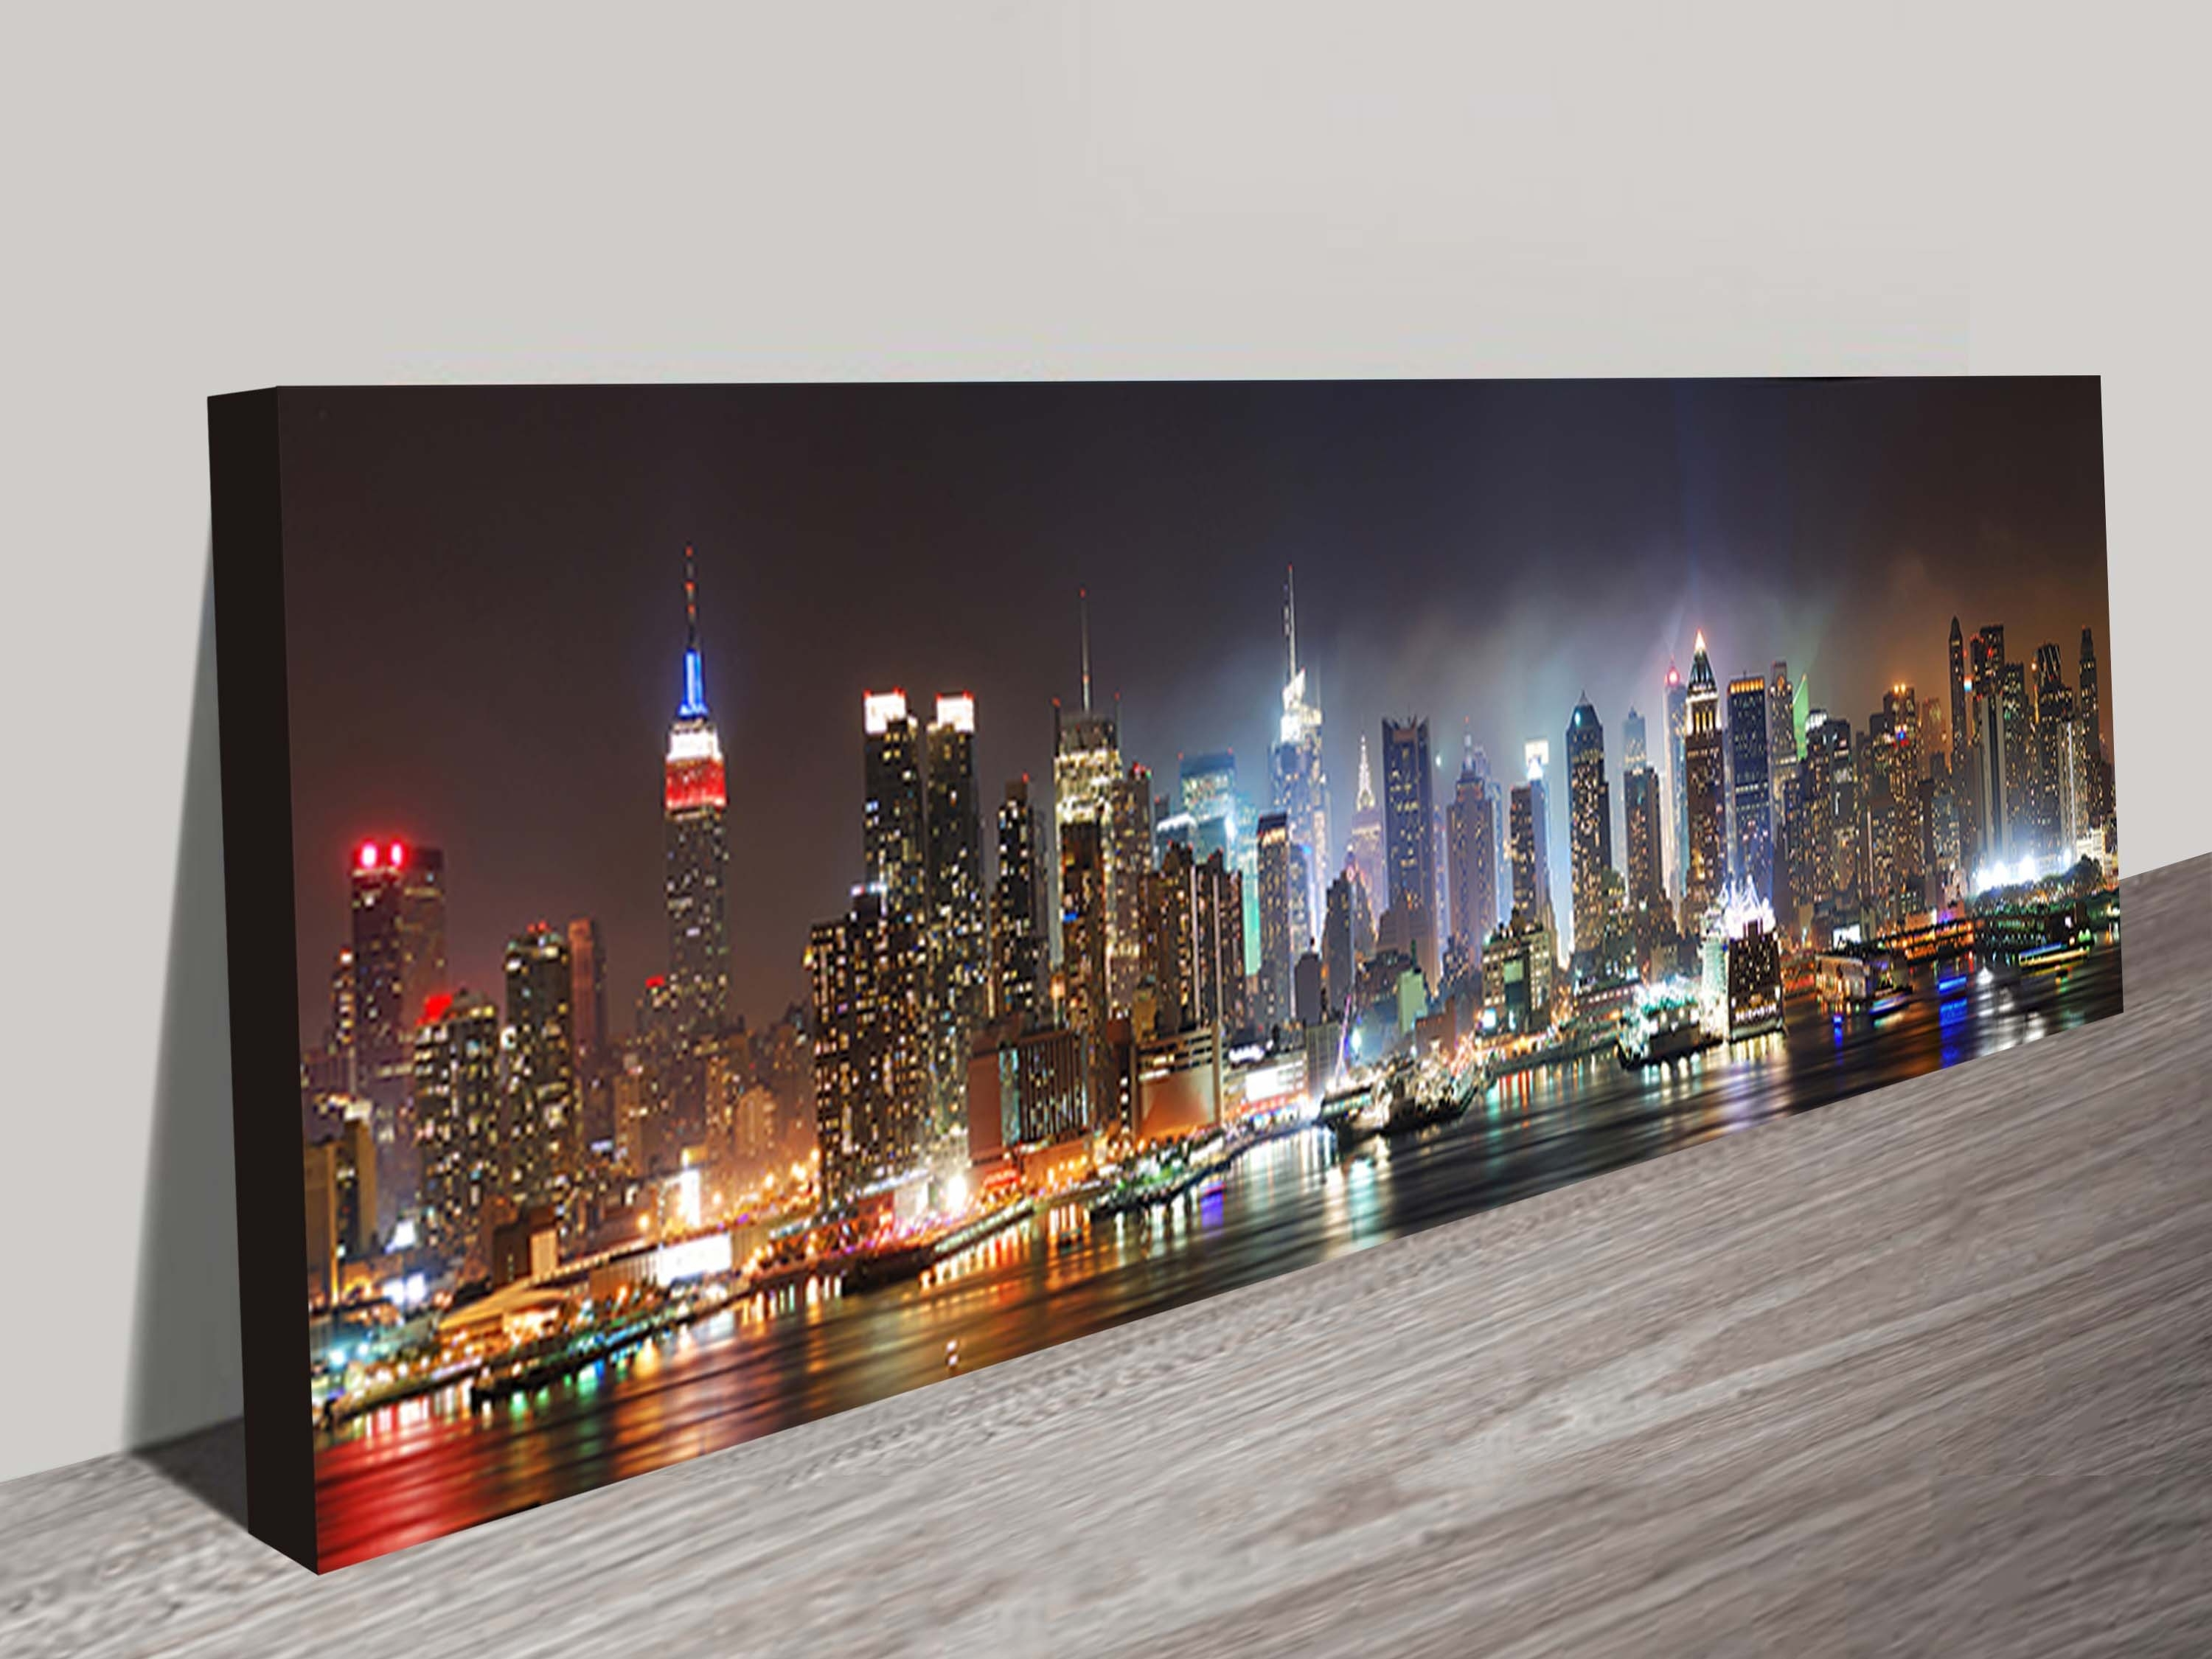 Widely Used New York Skyline Canvas Wall Print On Canvas With Regard To Canvas Wall Art Of New York City (View 15 of 15)